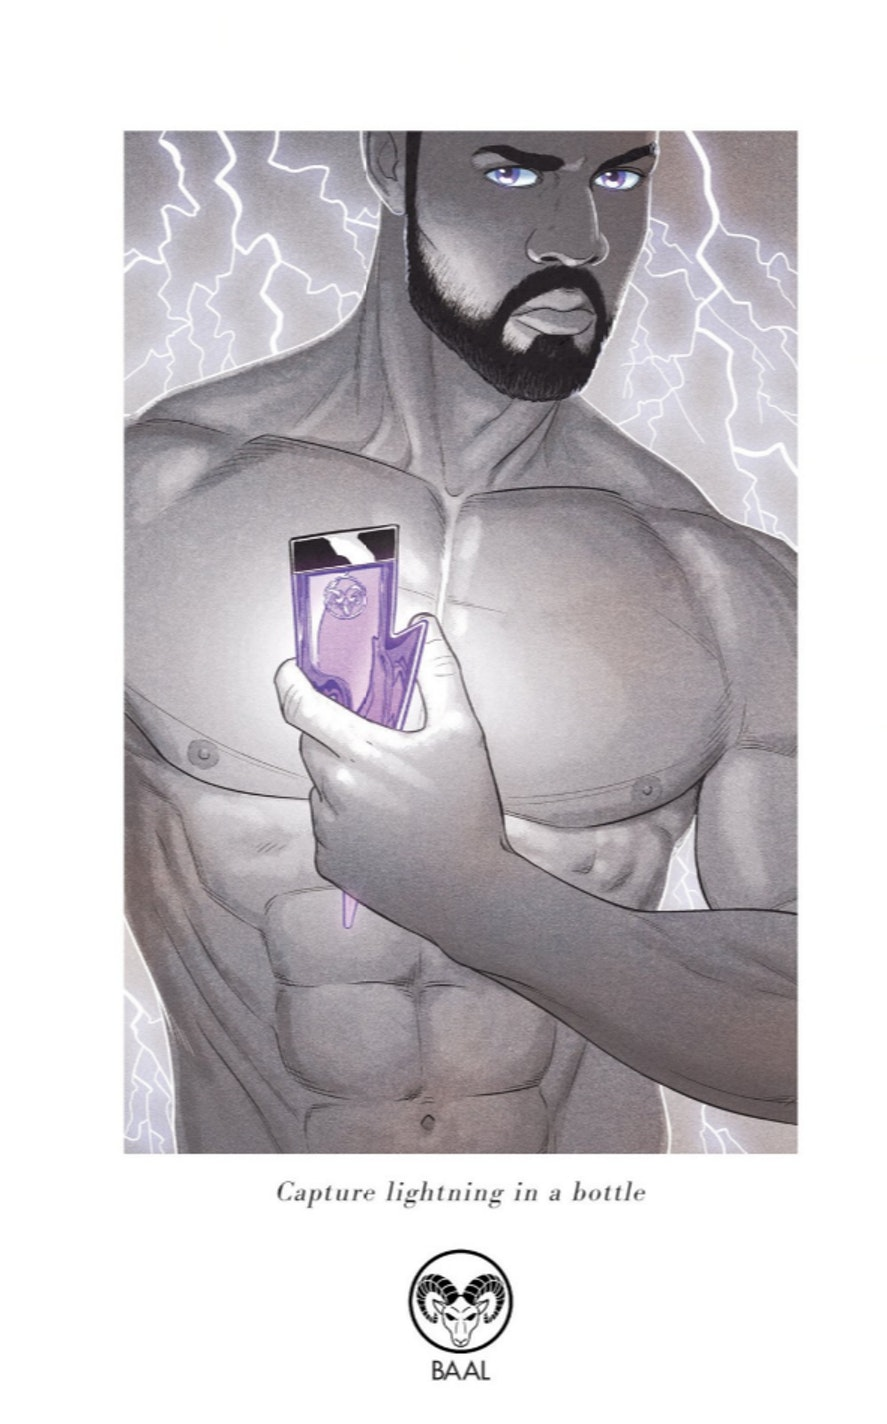 Old Spice Guy, is that you?